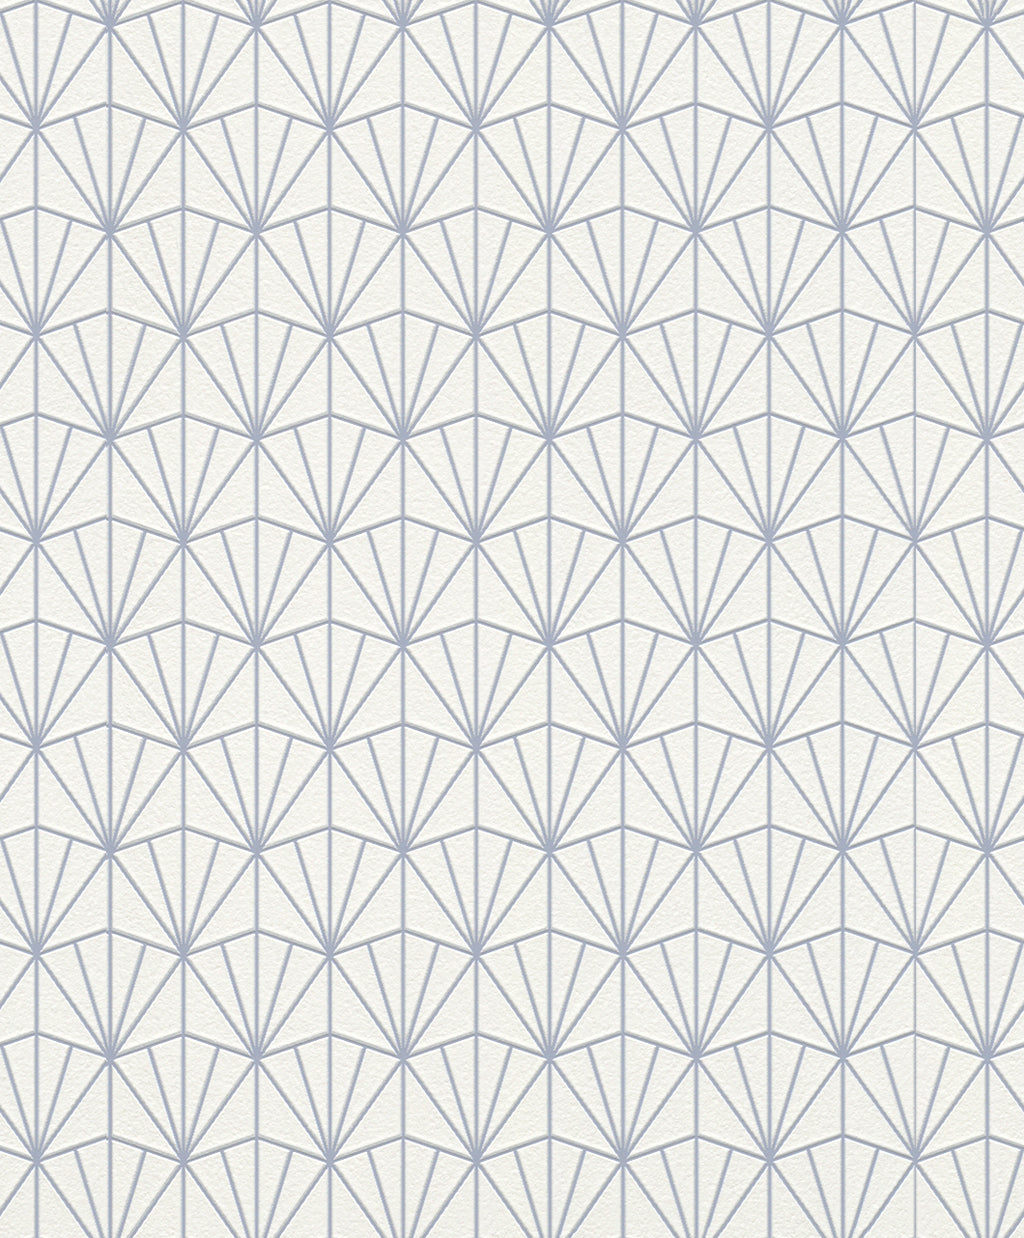 Blue Triangular Geometric Wallpaper R4395 | Traditional Home Interior